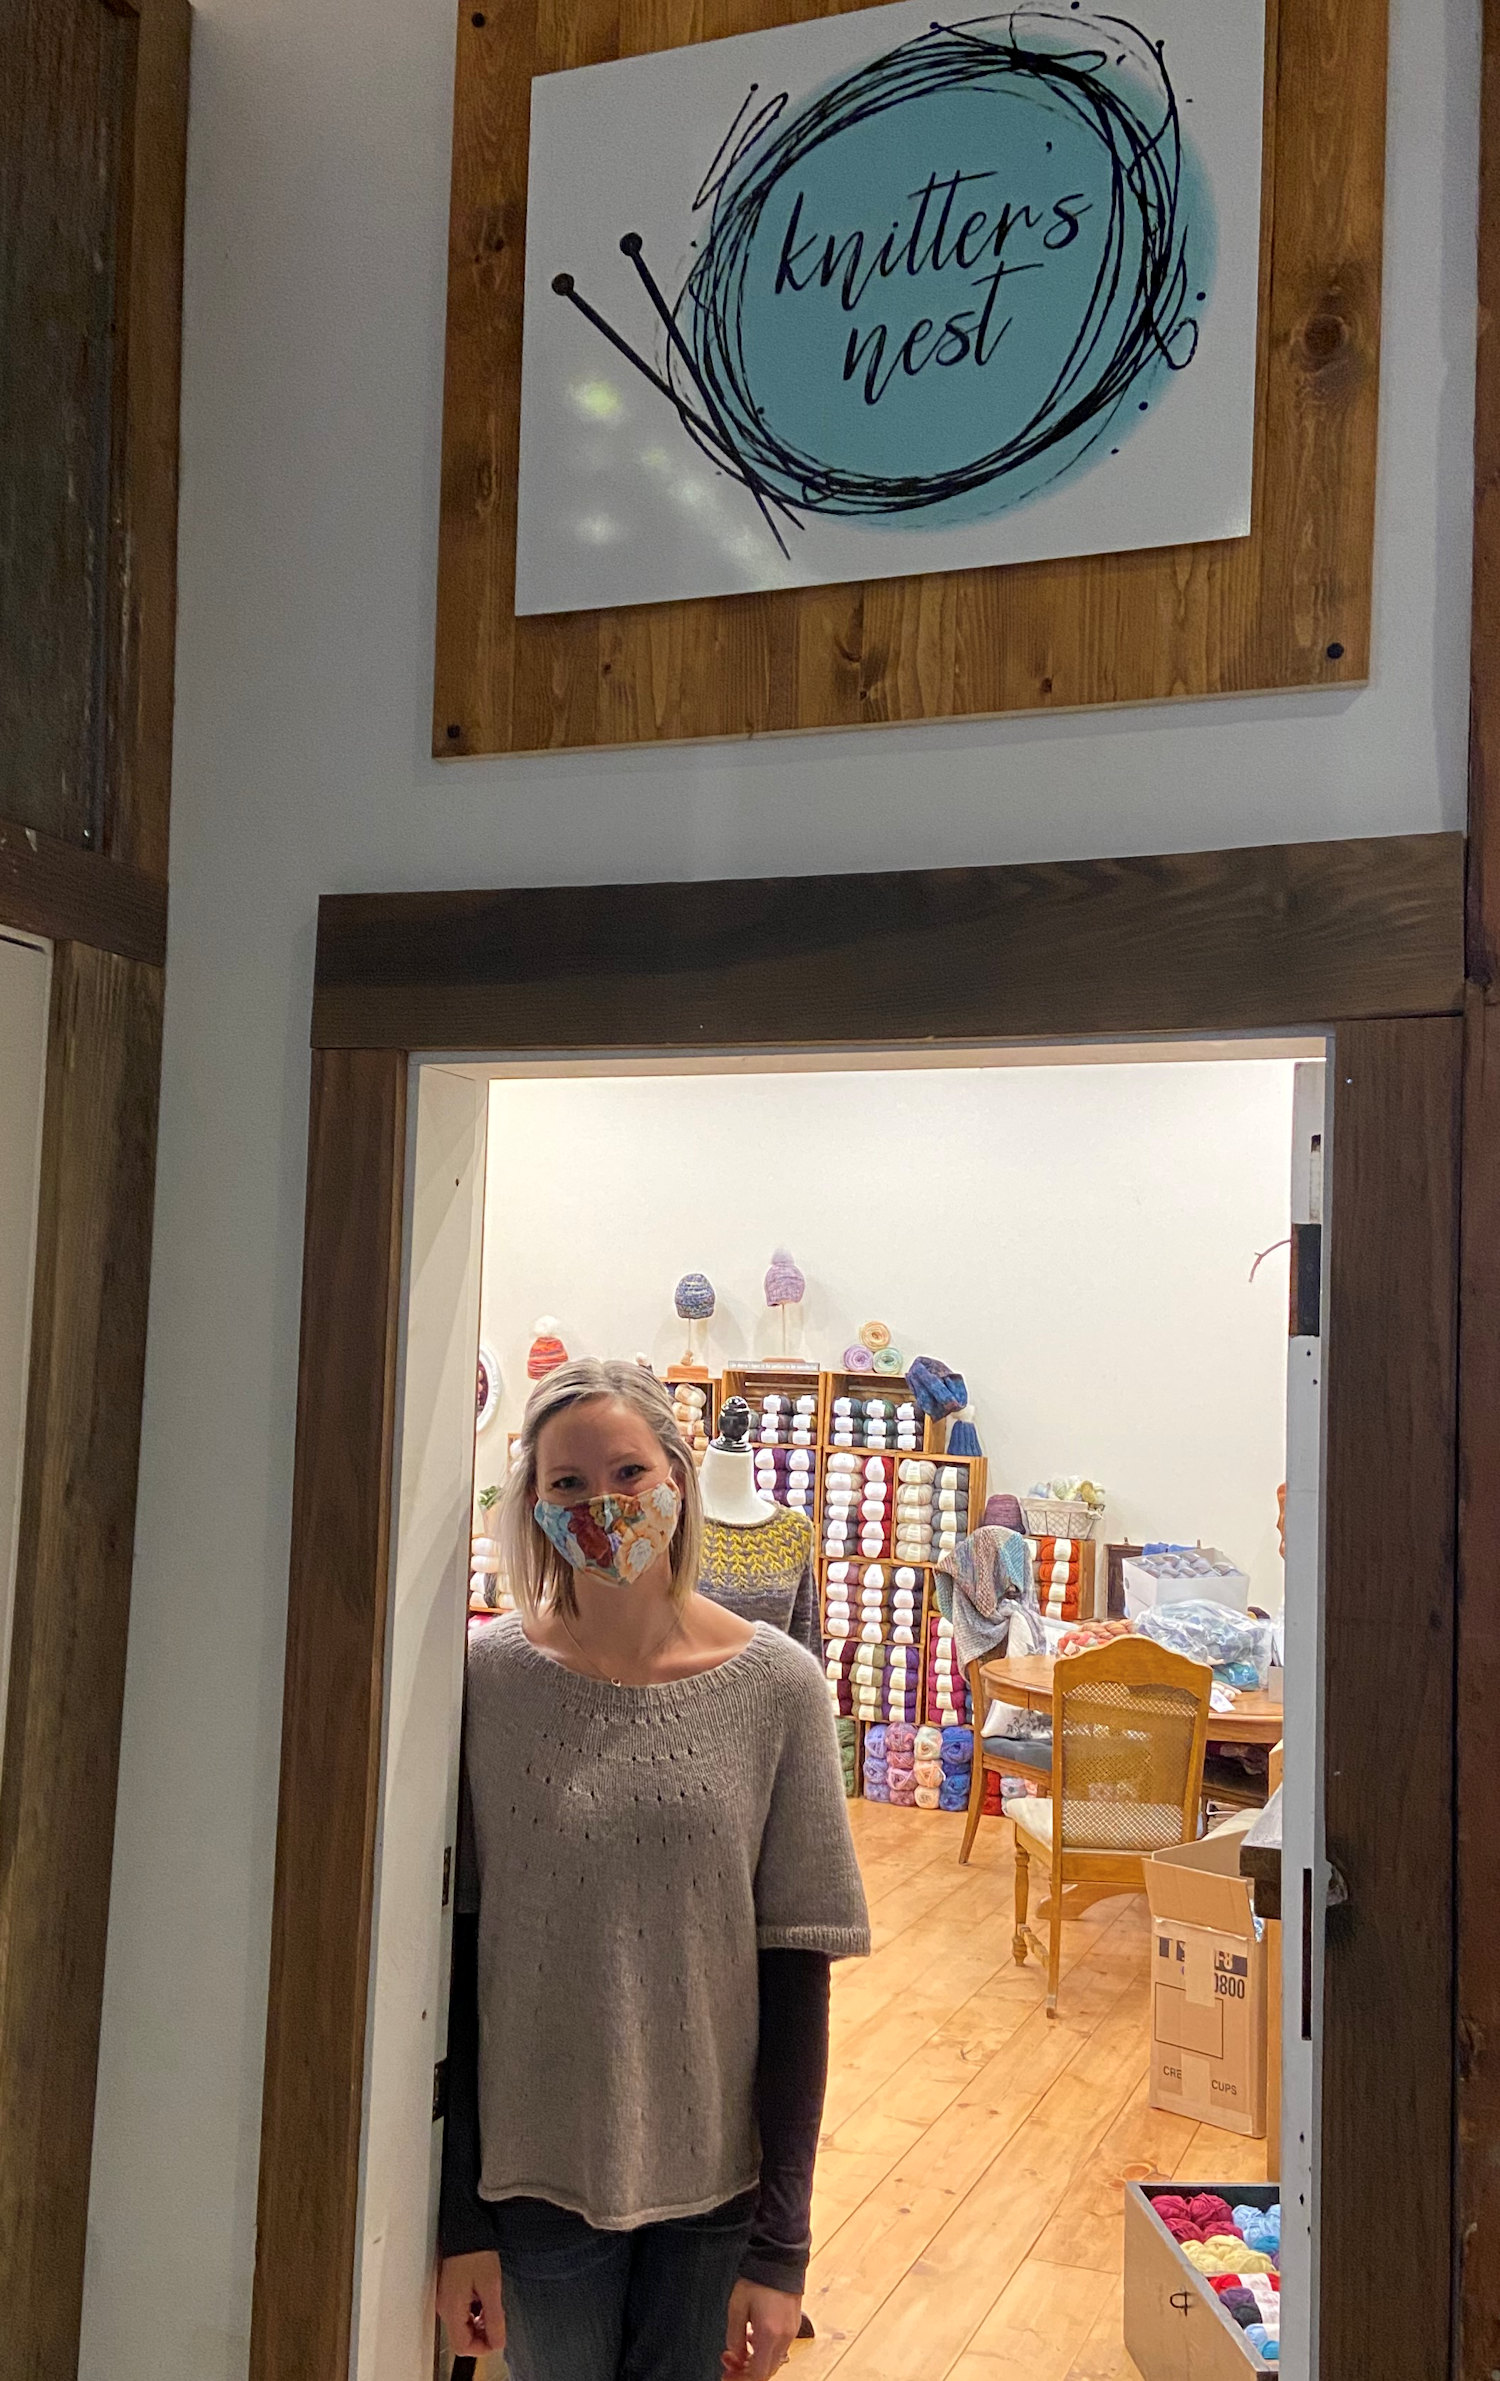 Amanda Hasler welcomes everyone to The Knitter's Nest